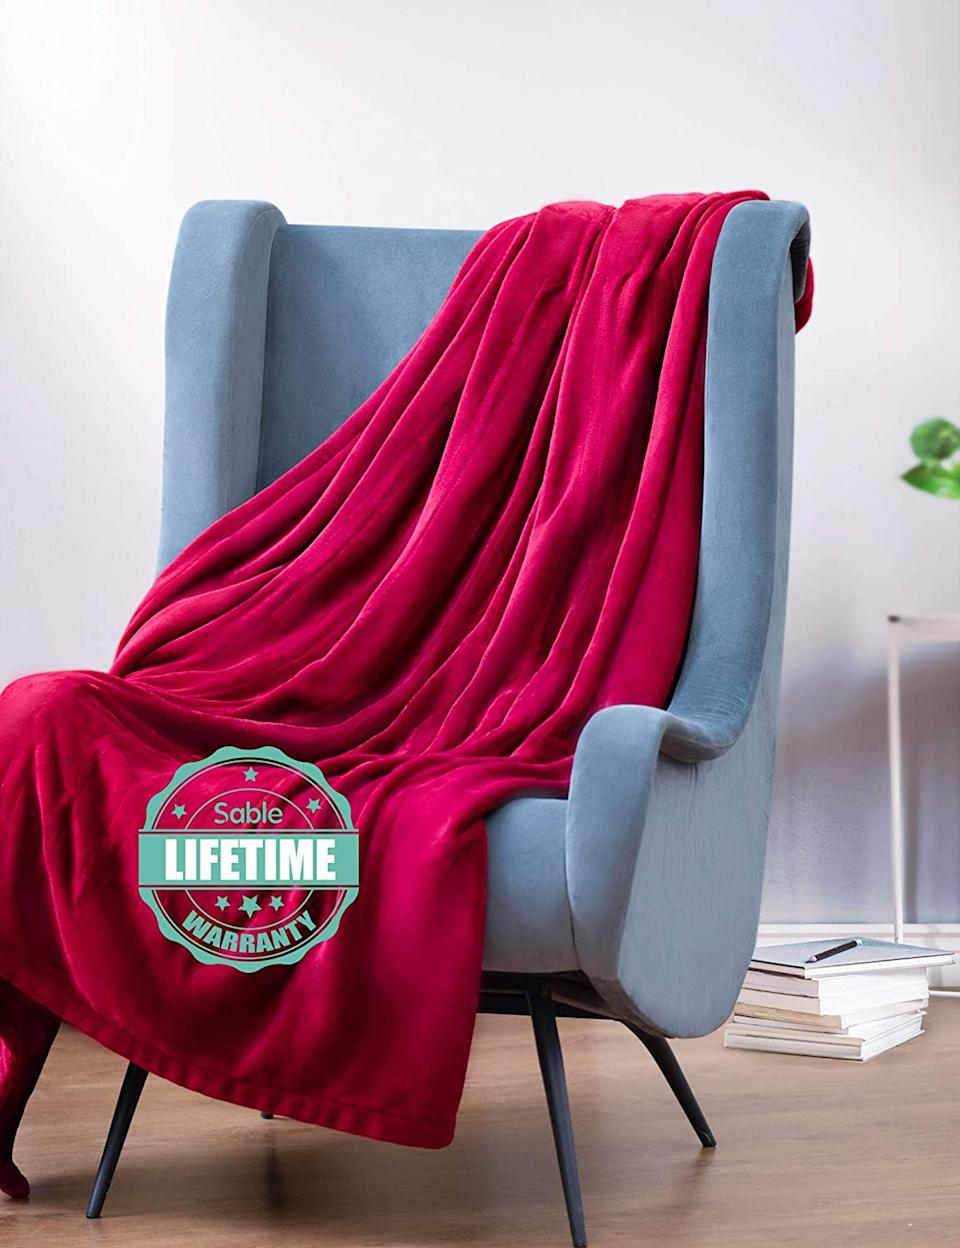 The Sable Electric Throw comes backed with a lifetime warranty. Image via Amazon.